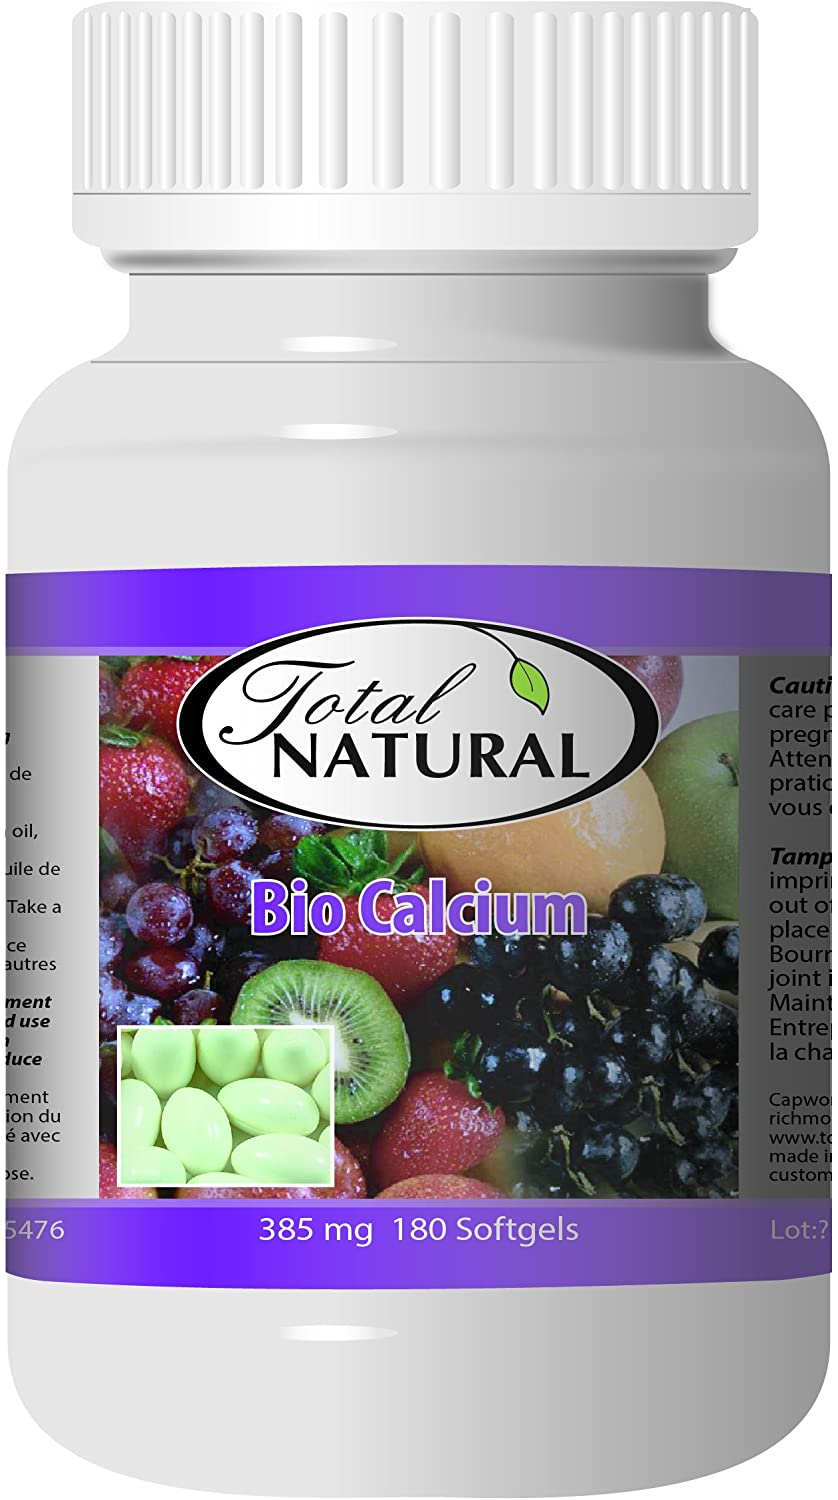 Bio Calcium 385mg 180s [2 Bottles] by Total Natural, Bone Health Support Supplement Promotes Uptake of Calcium, Joint Health